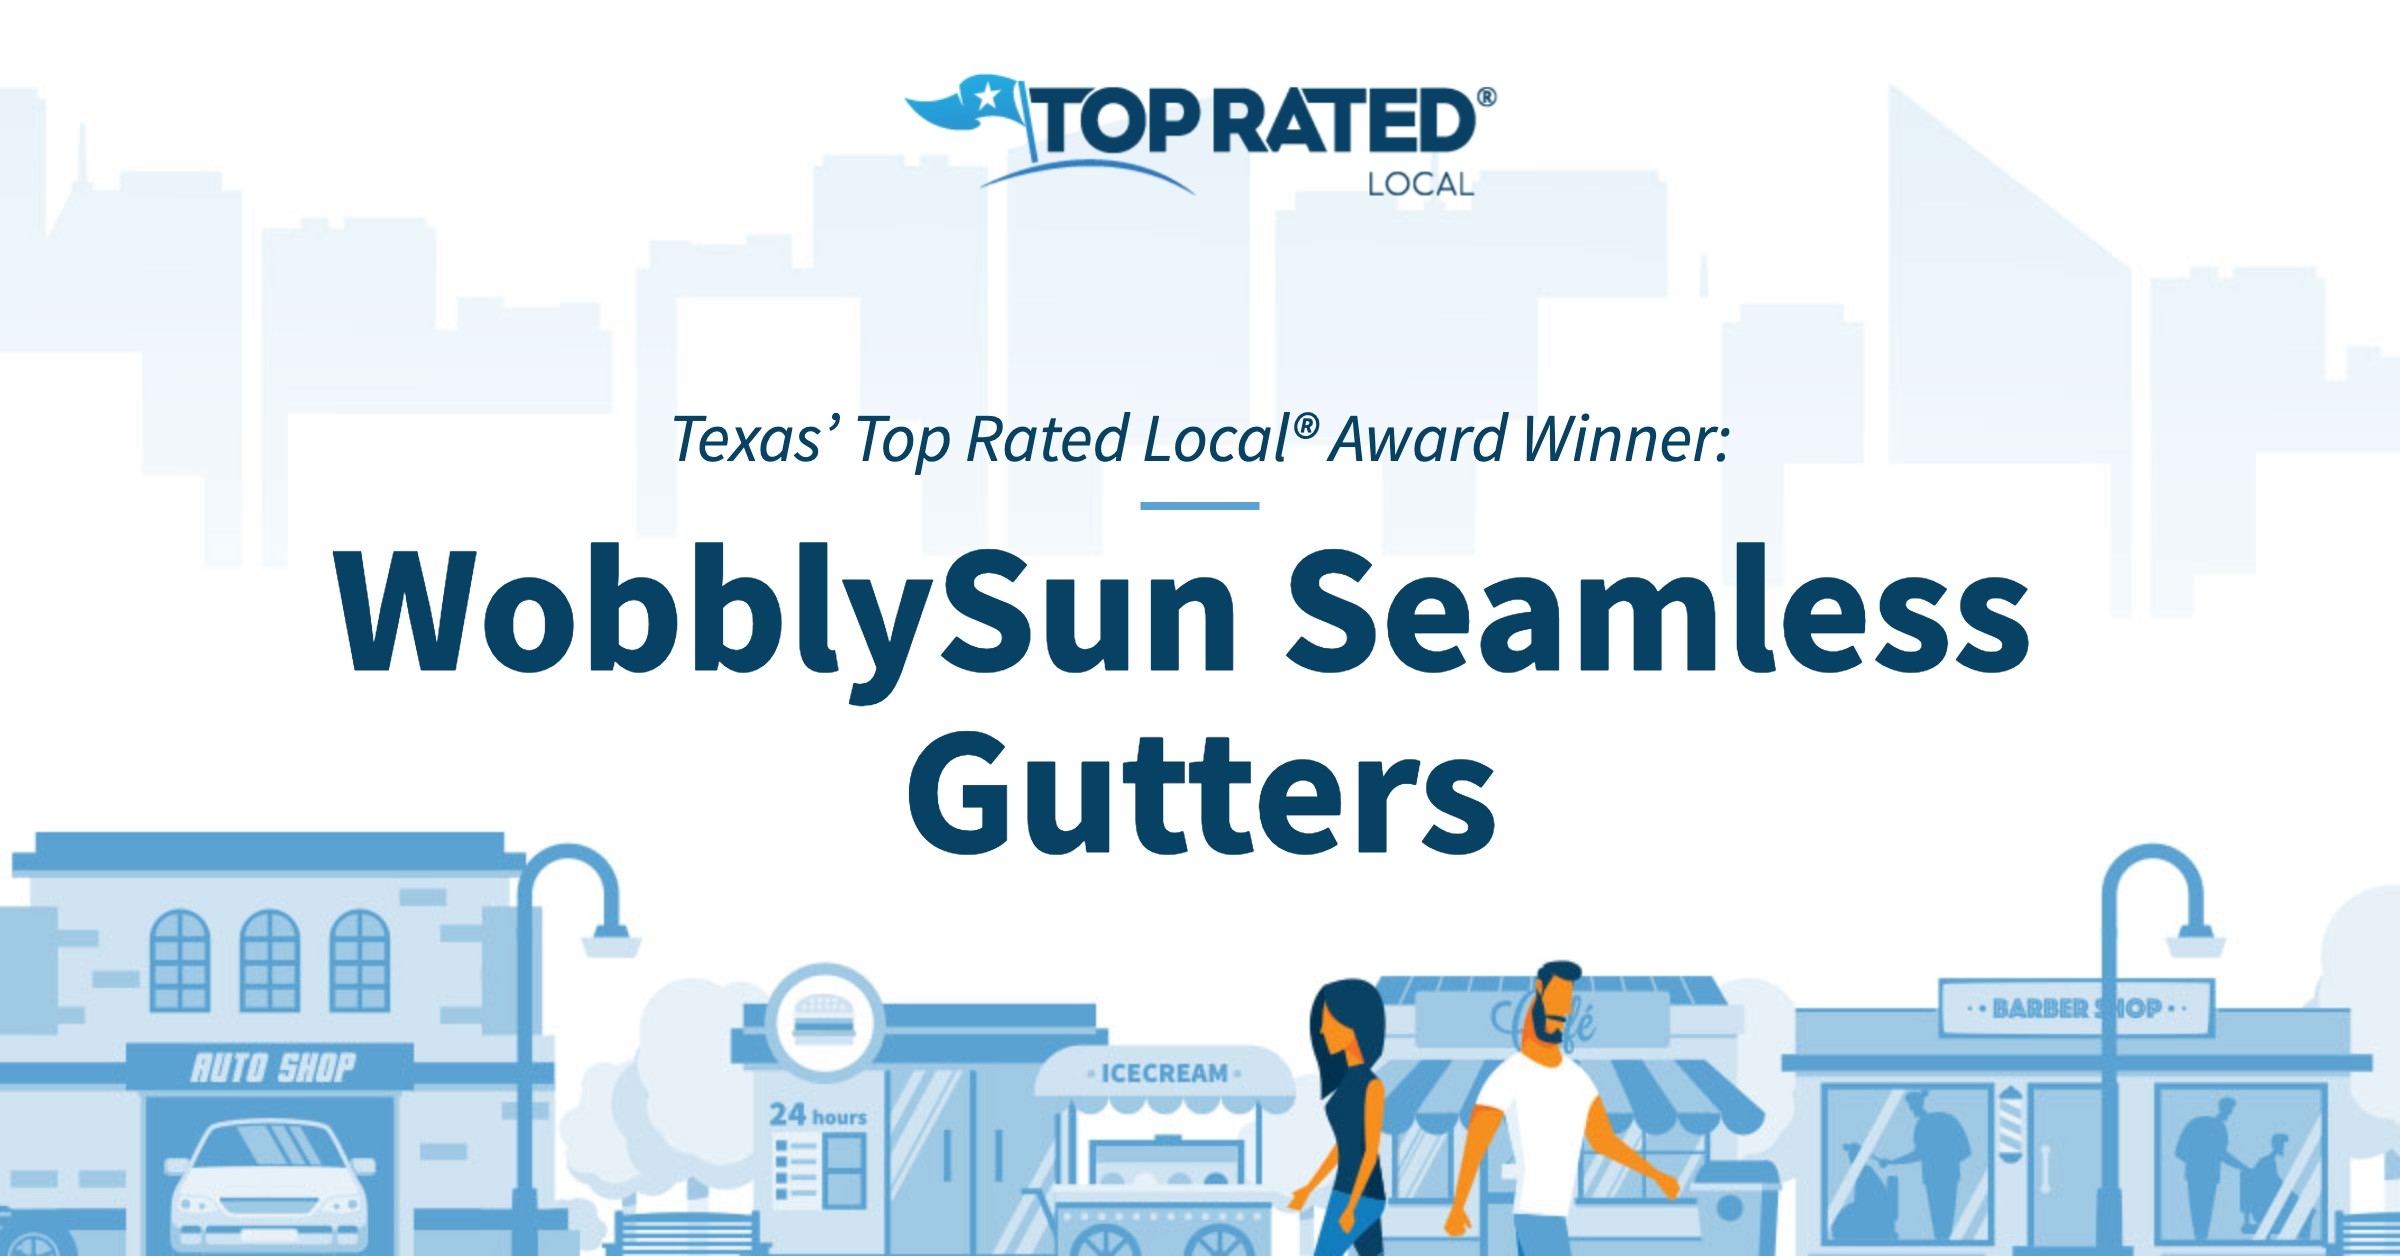 Texas' Top Rated Local® Award Winner: WobblySun Seamless Gutters